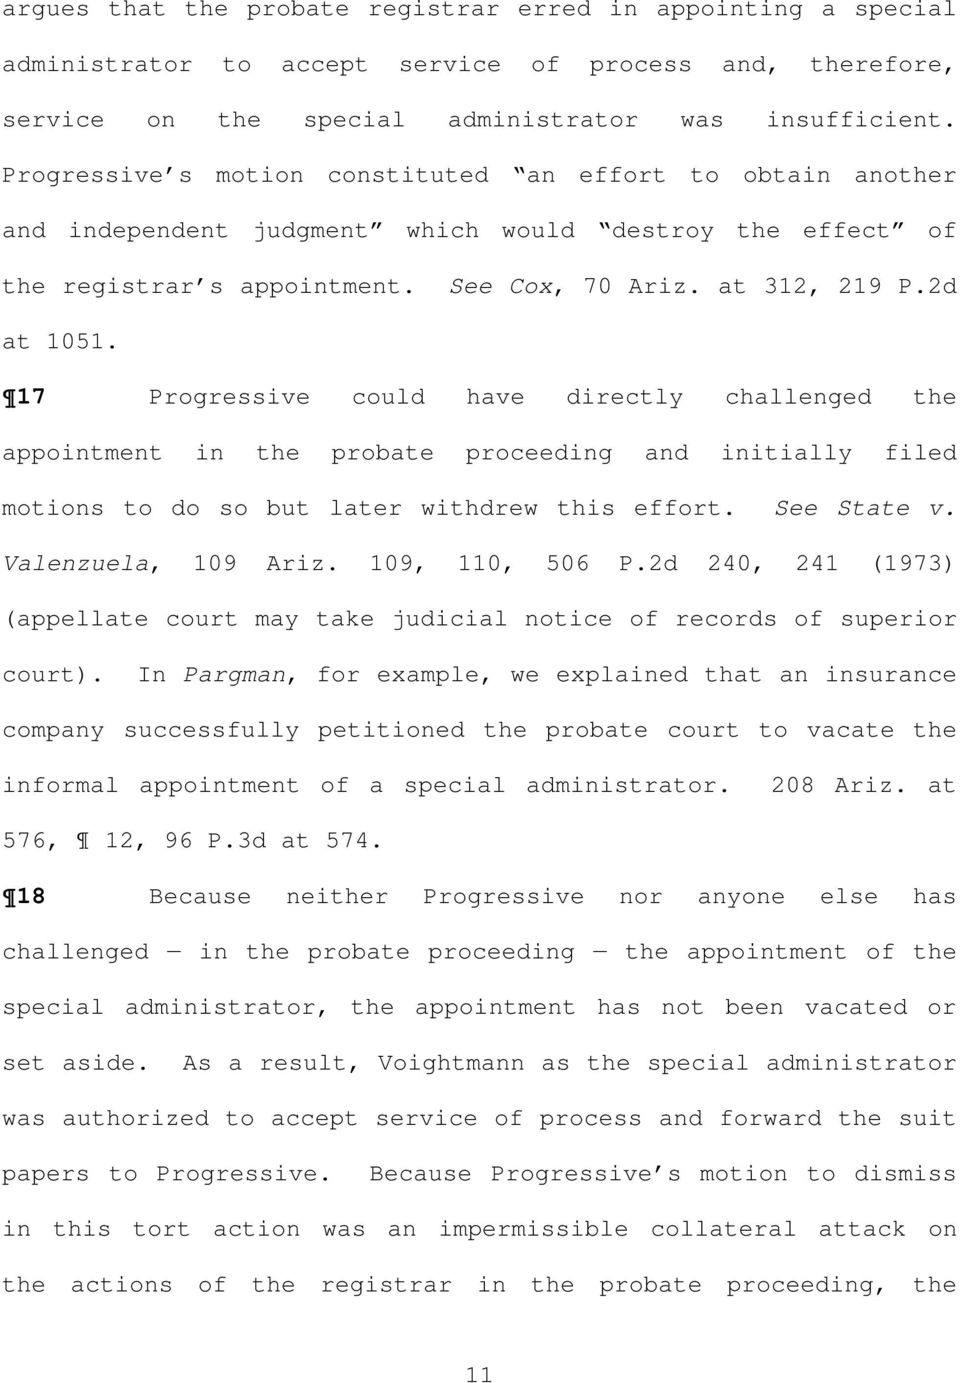 17 Progressive could have directly challenged the appointment in the probate proceeding and initially filed motions to do so but later withdrew this effort. See State v. Valenzuela, 109 Ariz.